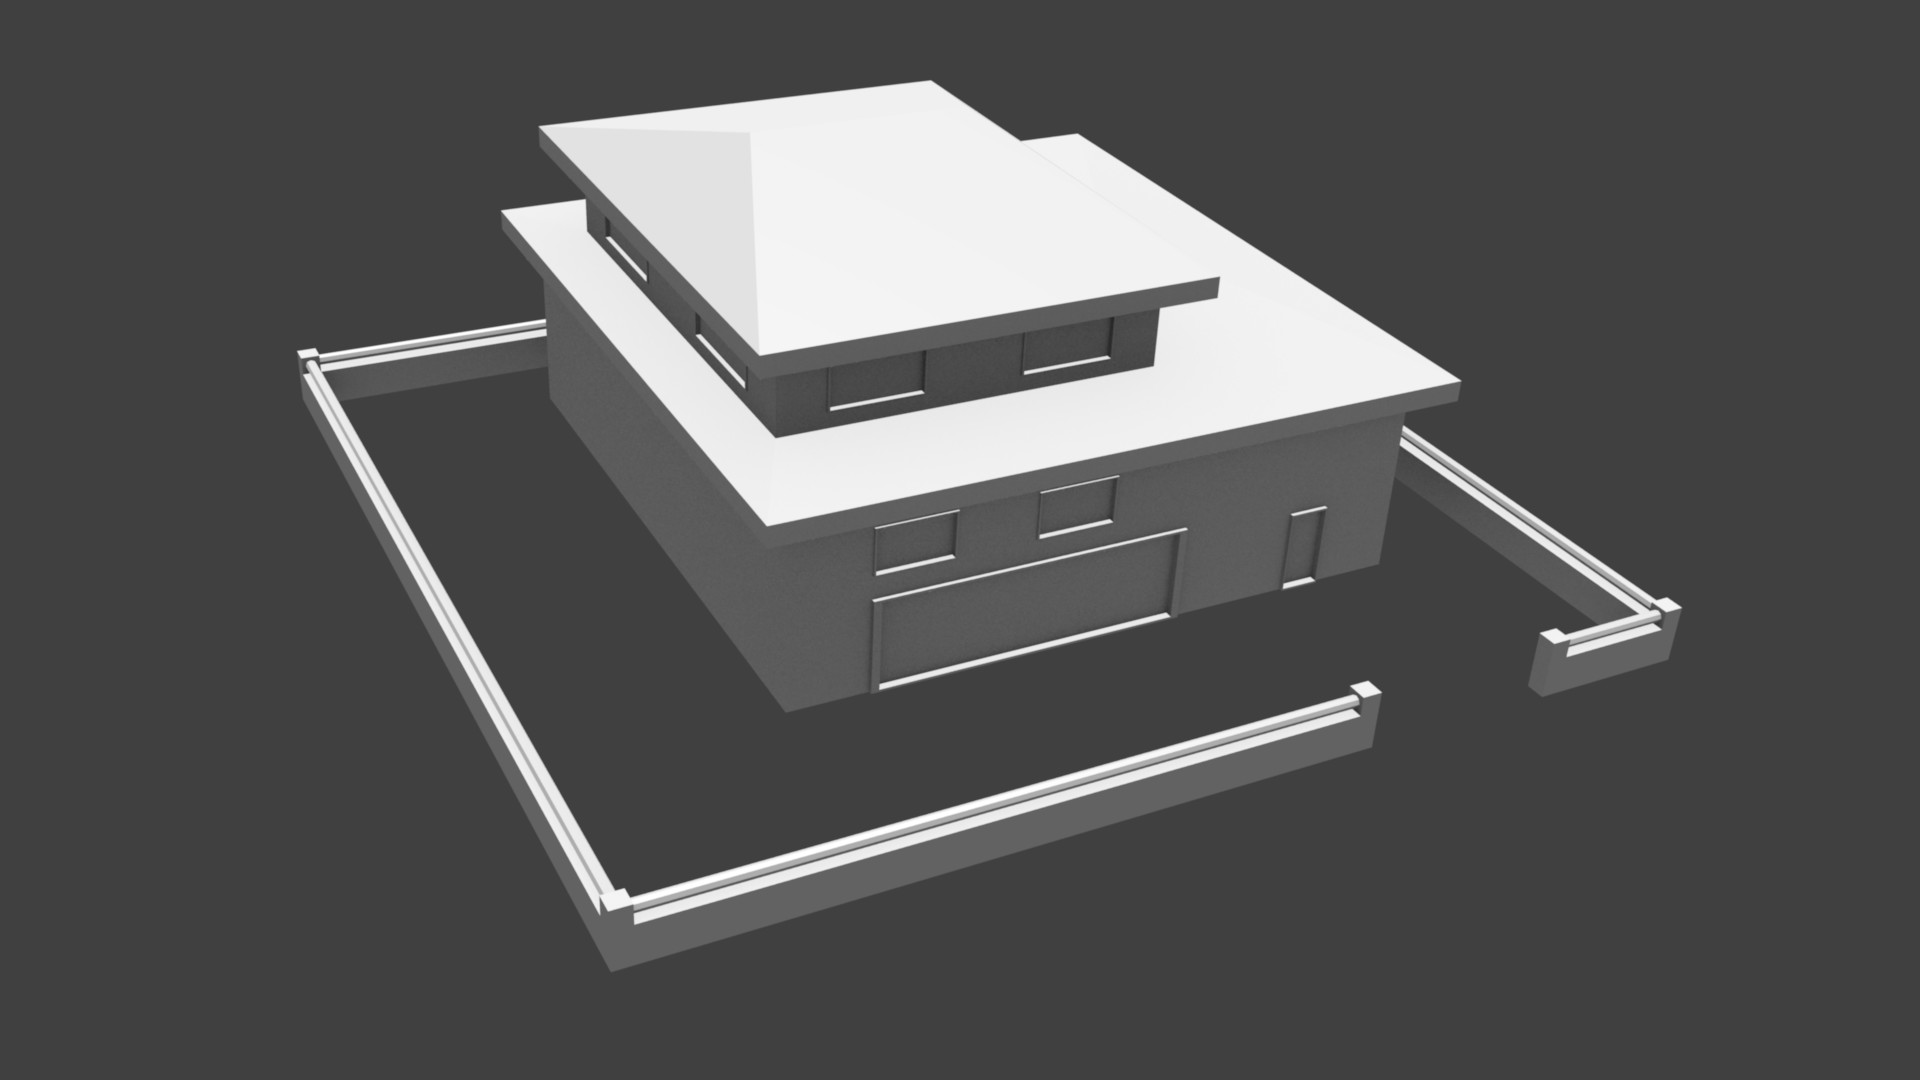 The rendered mesh without textures.